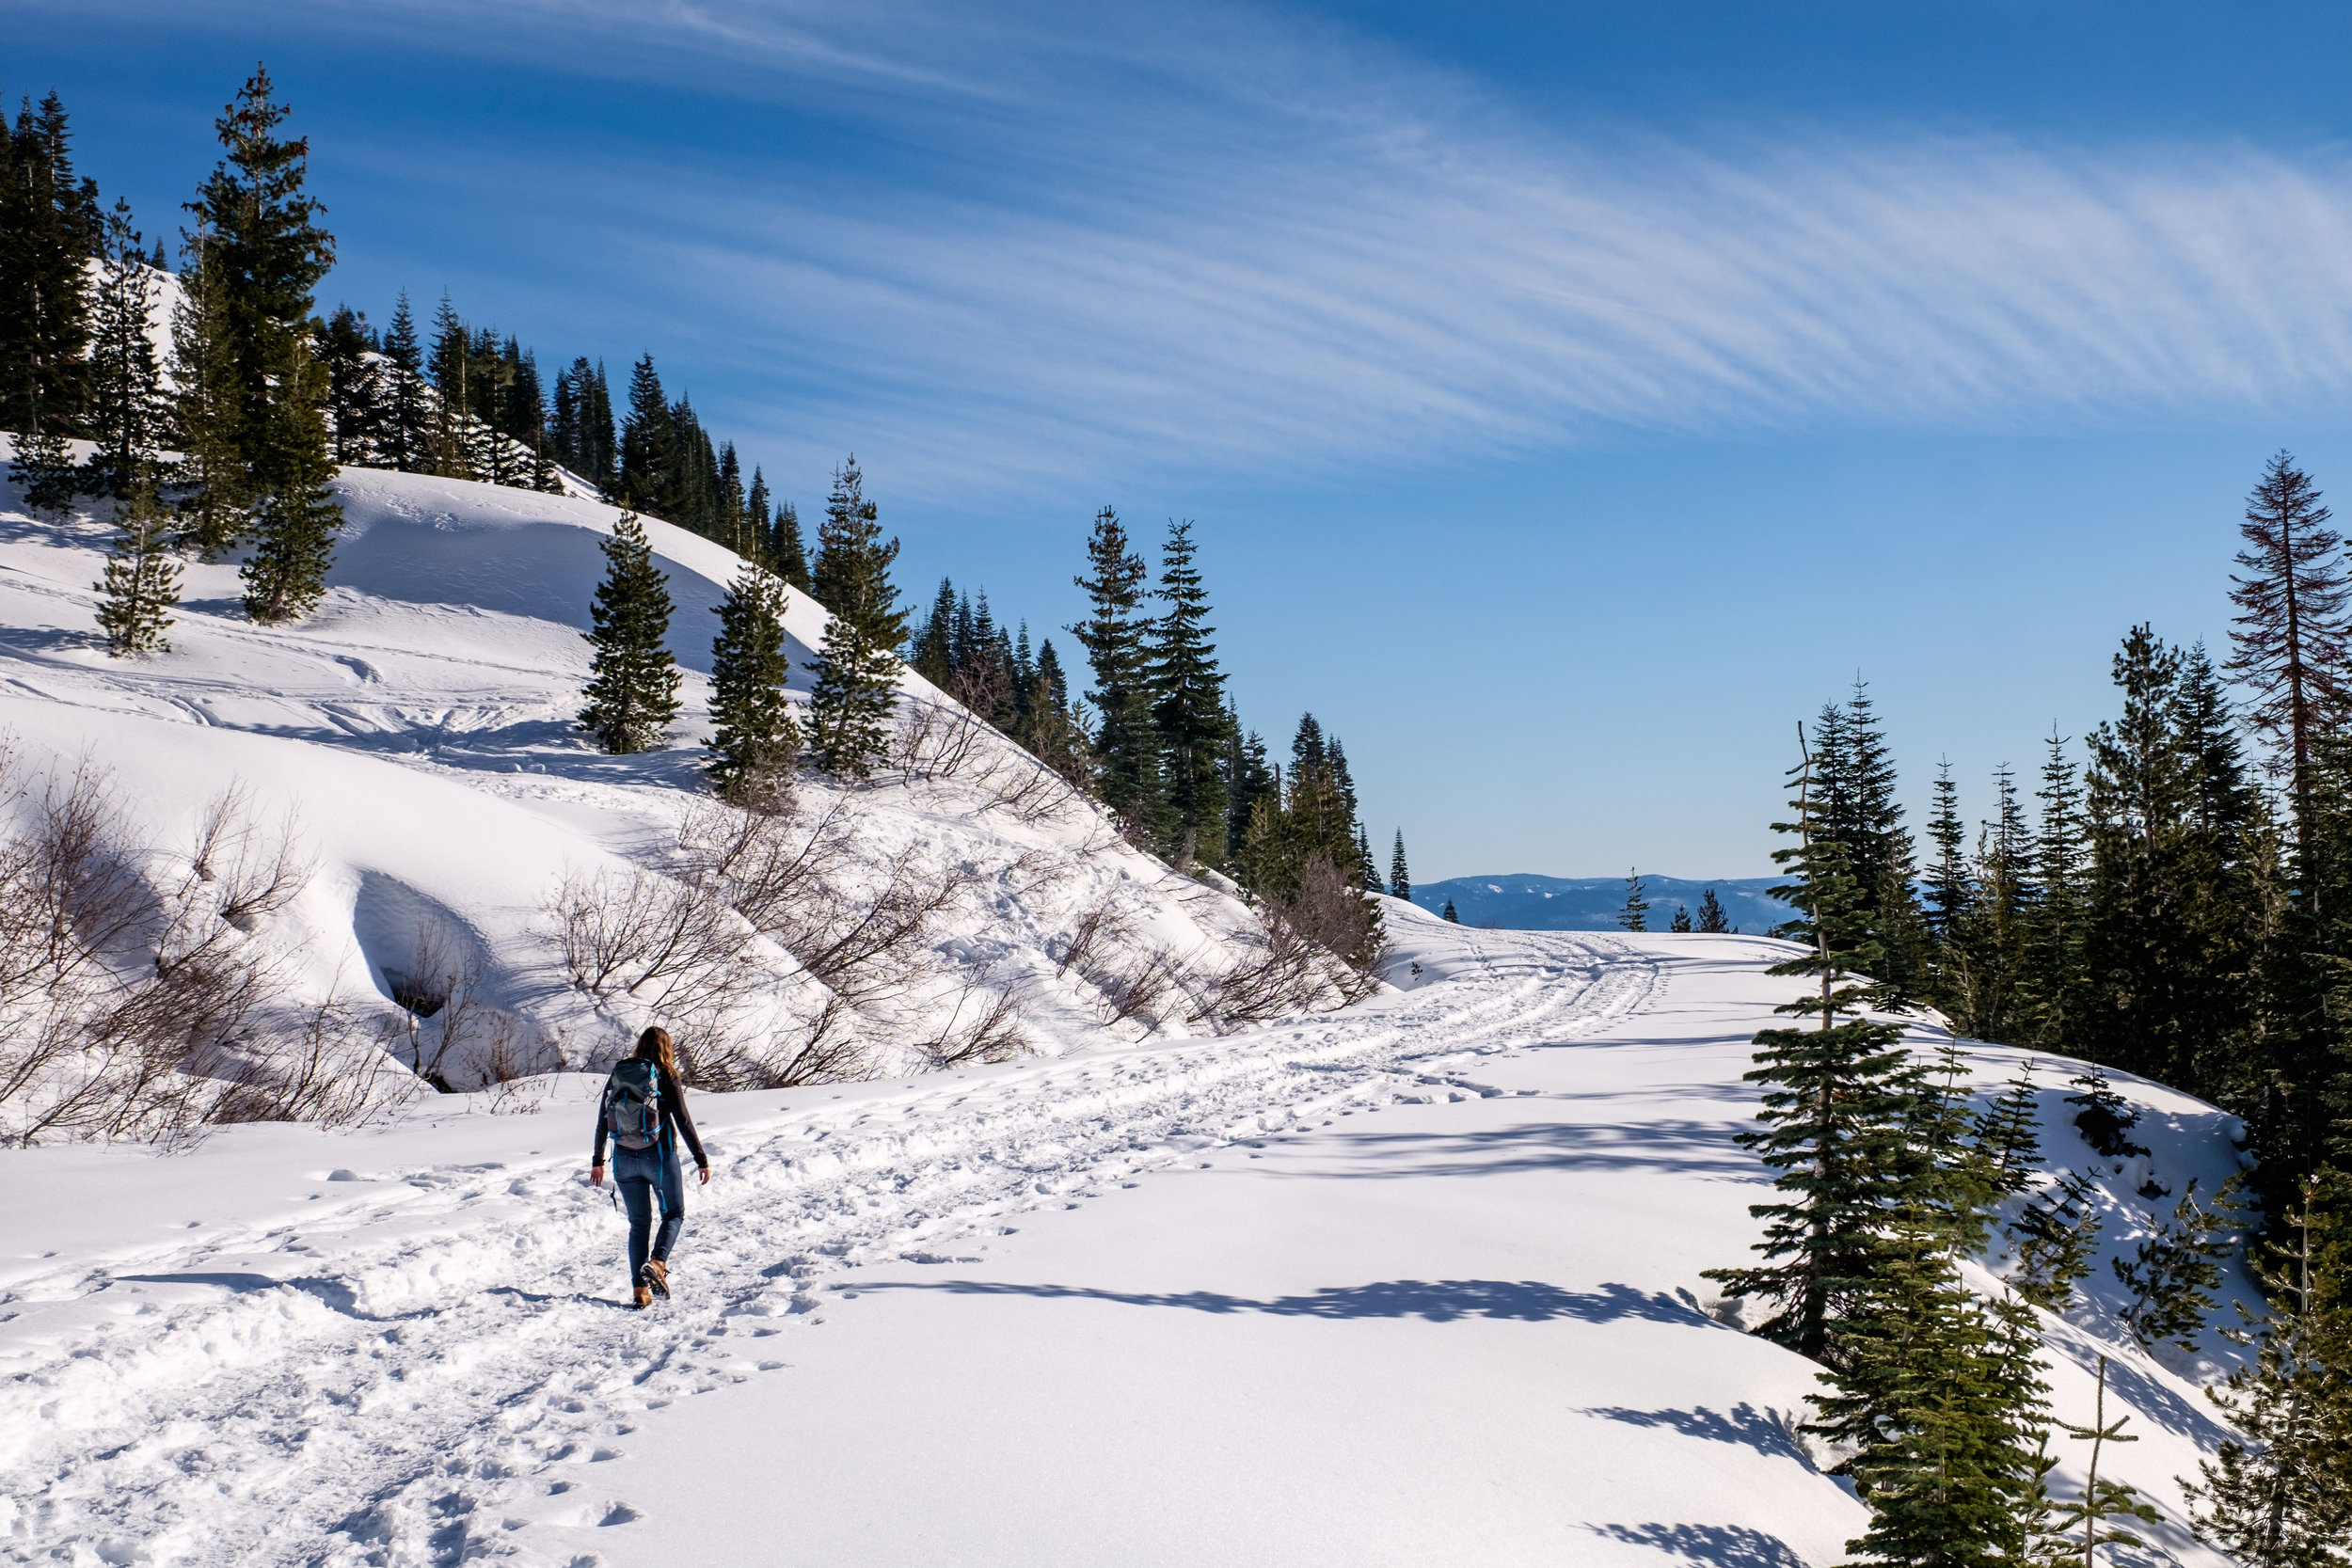 Setting forth on a snow-covered Lassen Volcanic National Park Scenic Highway from the Kohm Yah-mah-nee Visitor Center in Lassen Volcanic National Park.